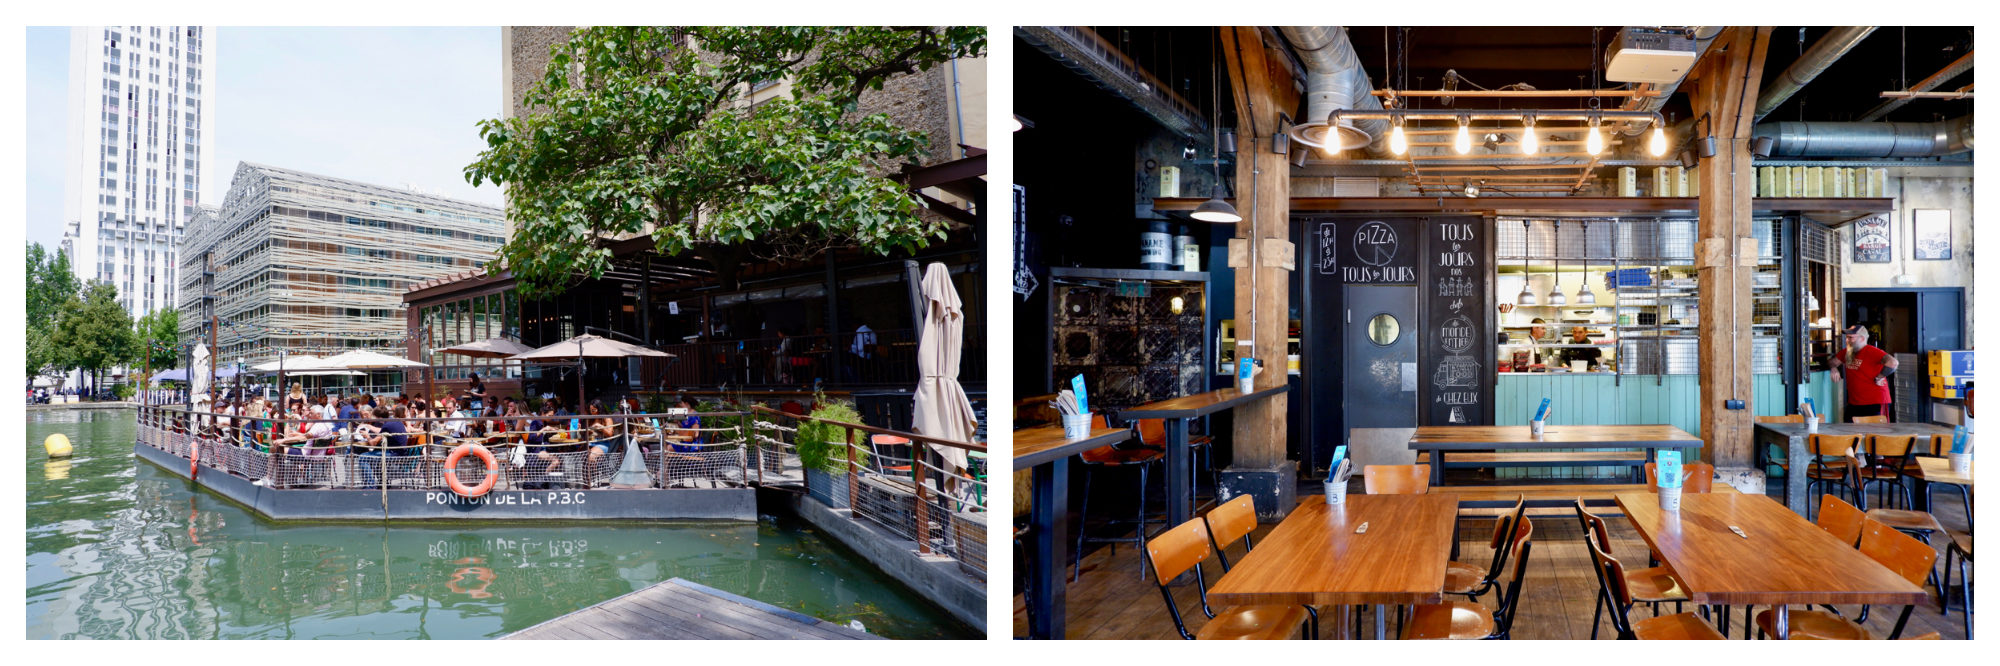 The terrace reaching out across the water of the Canal de l'Ourcq at the Paname Brewing Company in Paris on a sunny summer's day (left). The industrial interiors of Paris Brewing Company on the Canal de l'Ourcq (right).